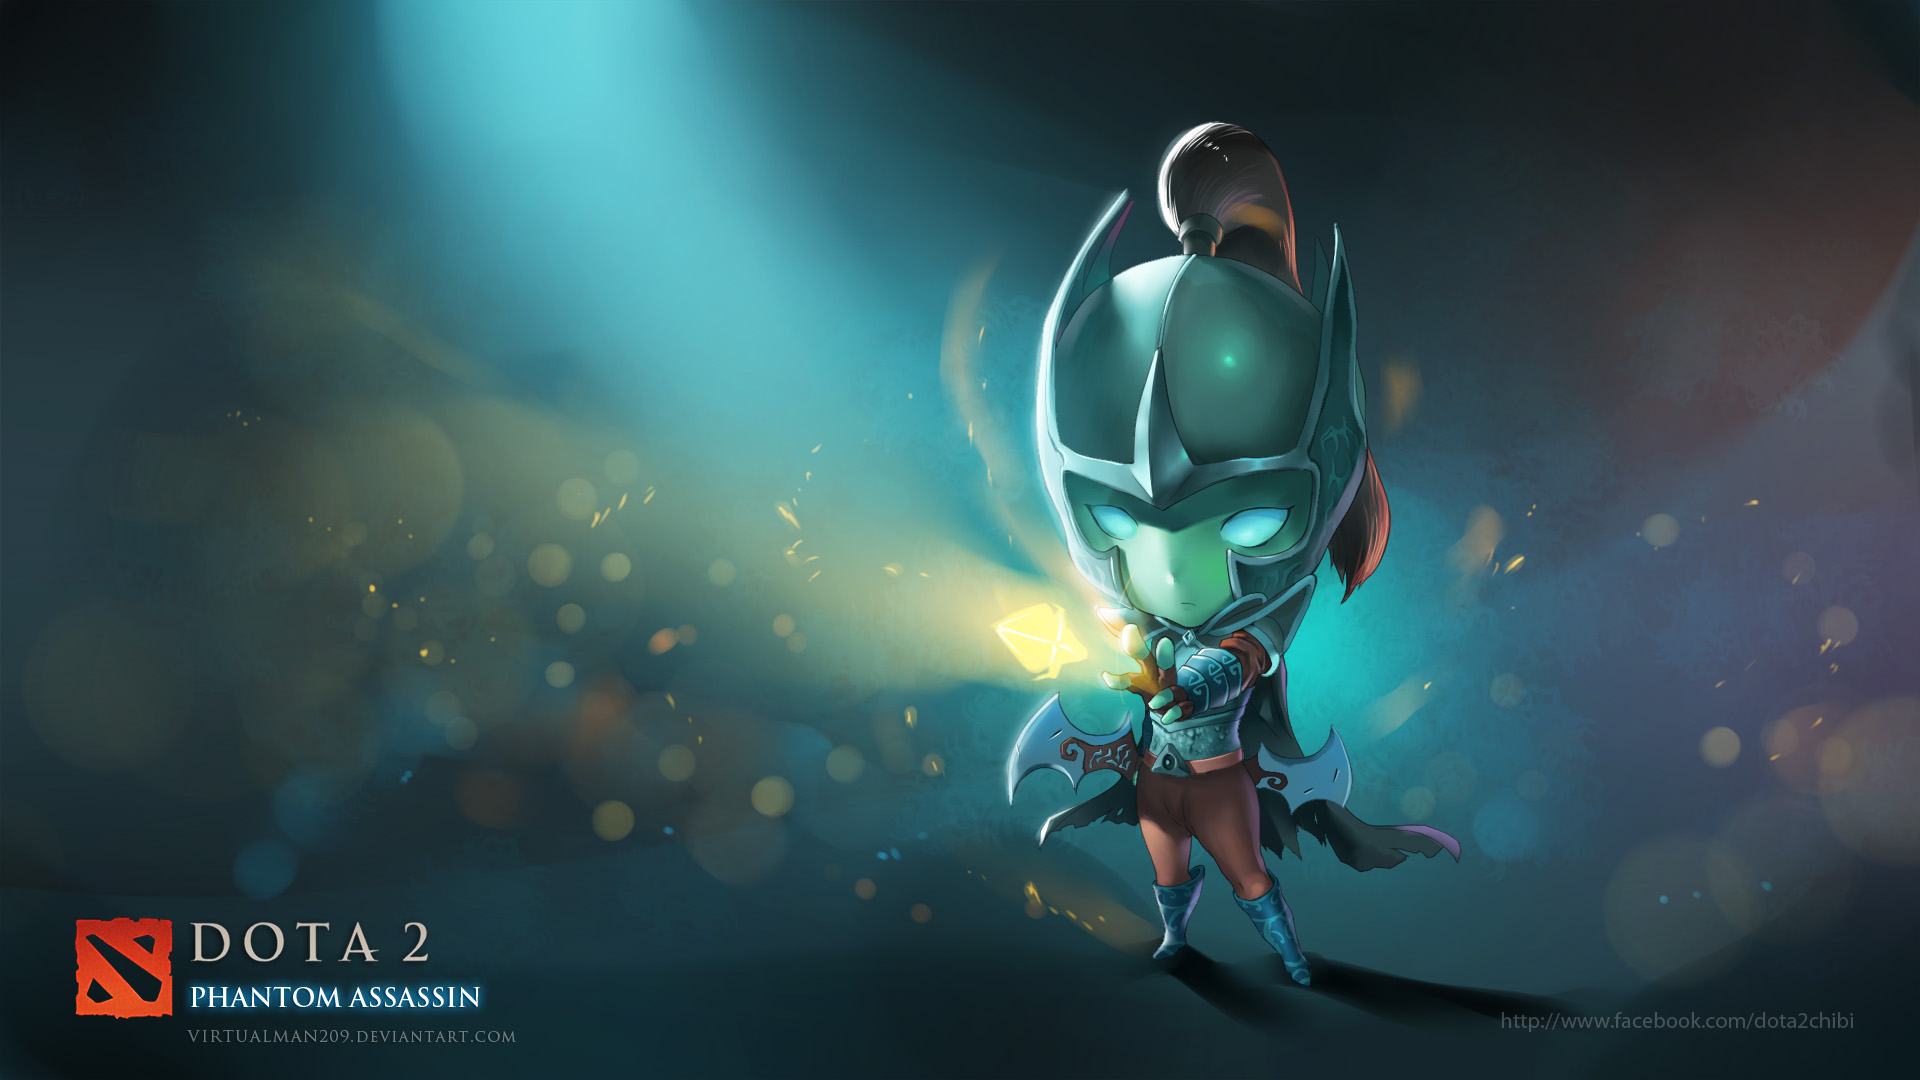 Collection of Dota Wallpaper For Desktop on HDWallpapers